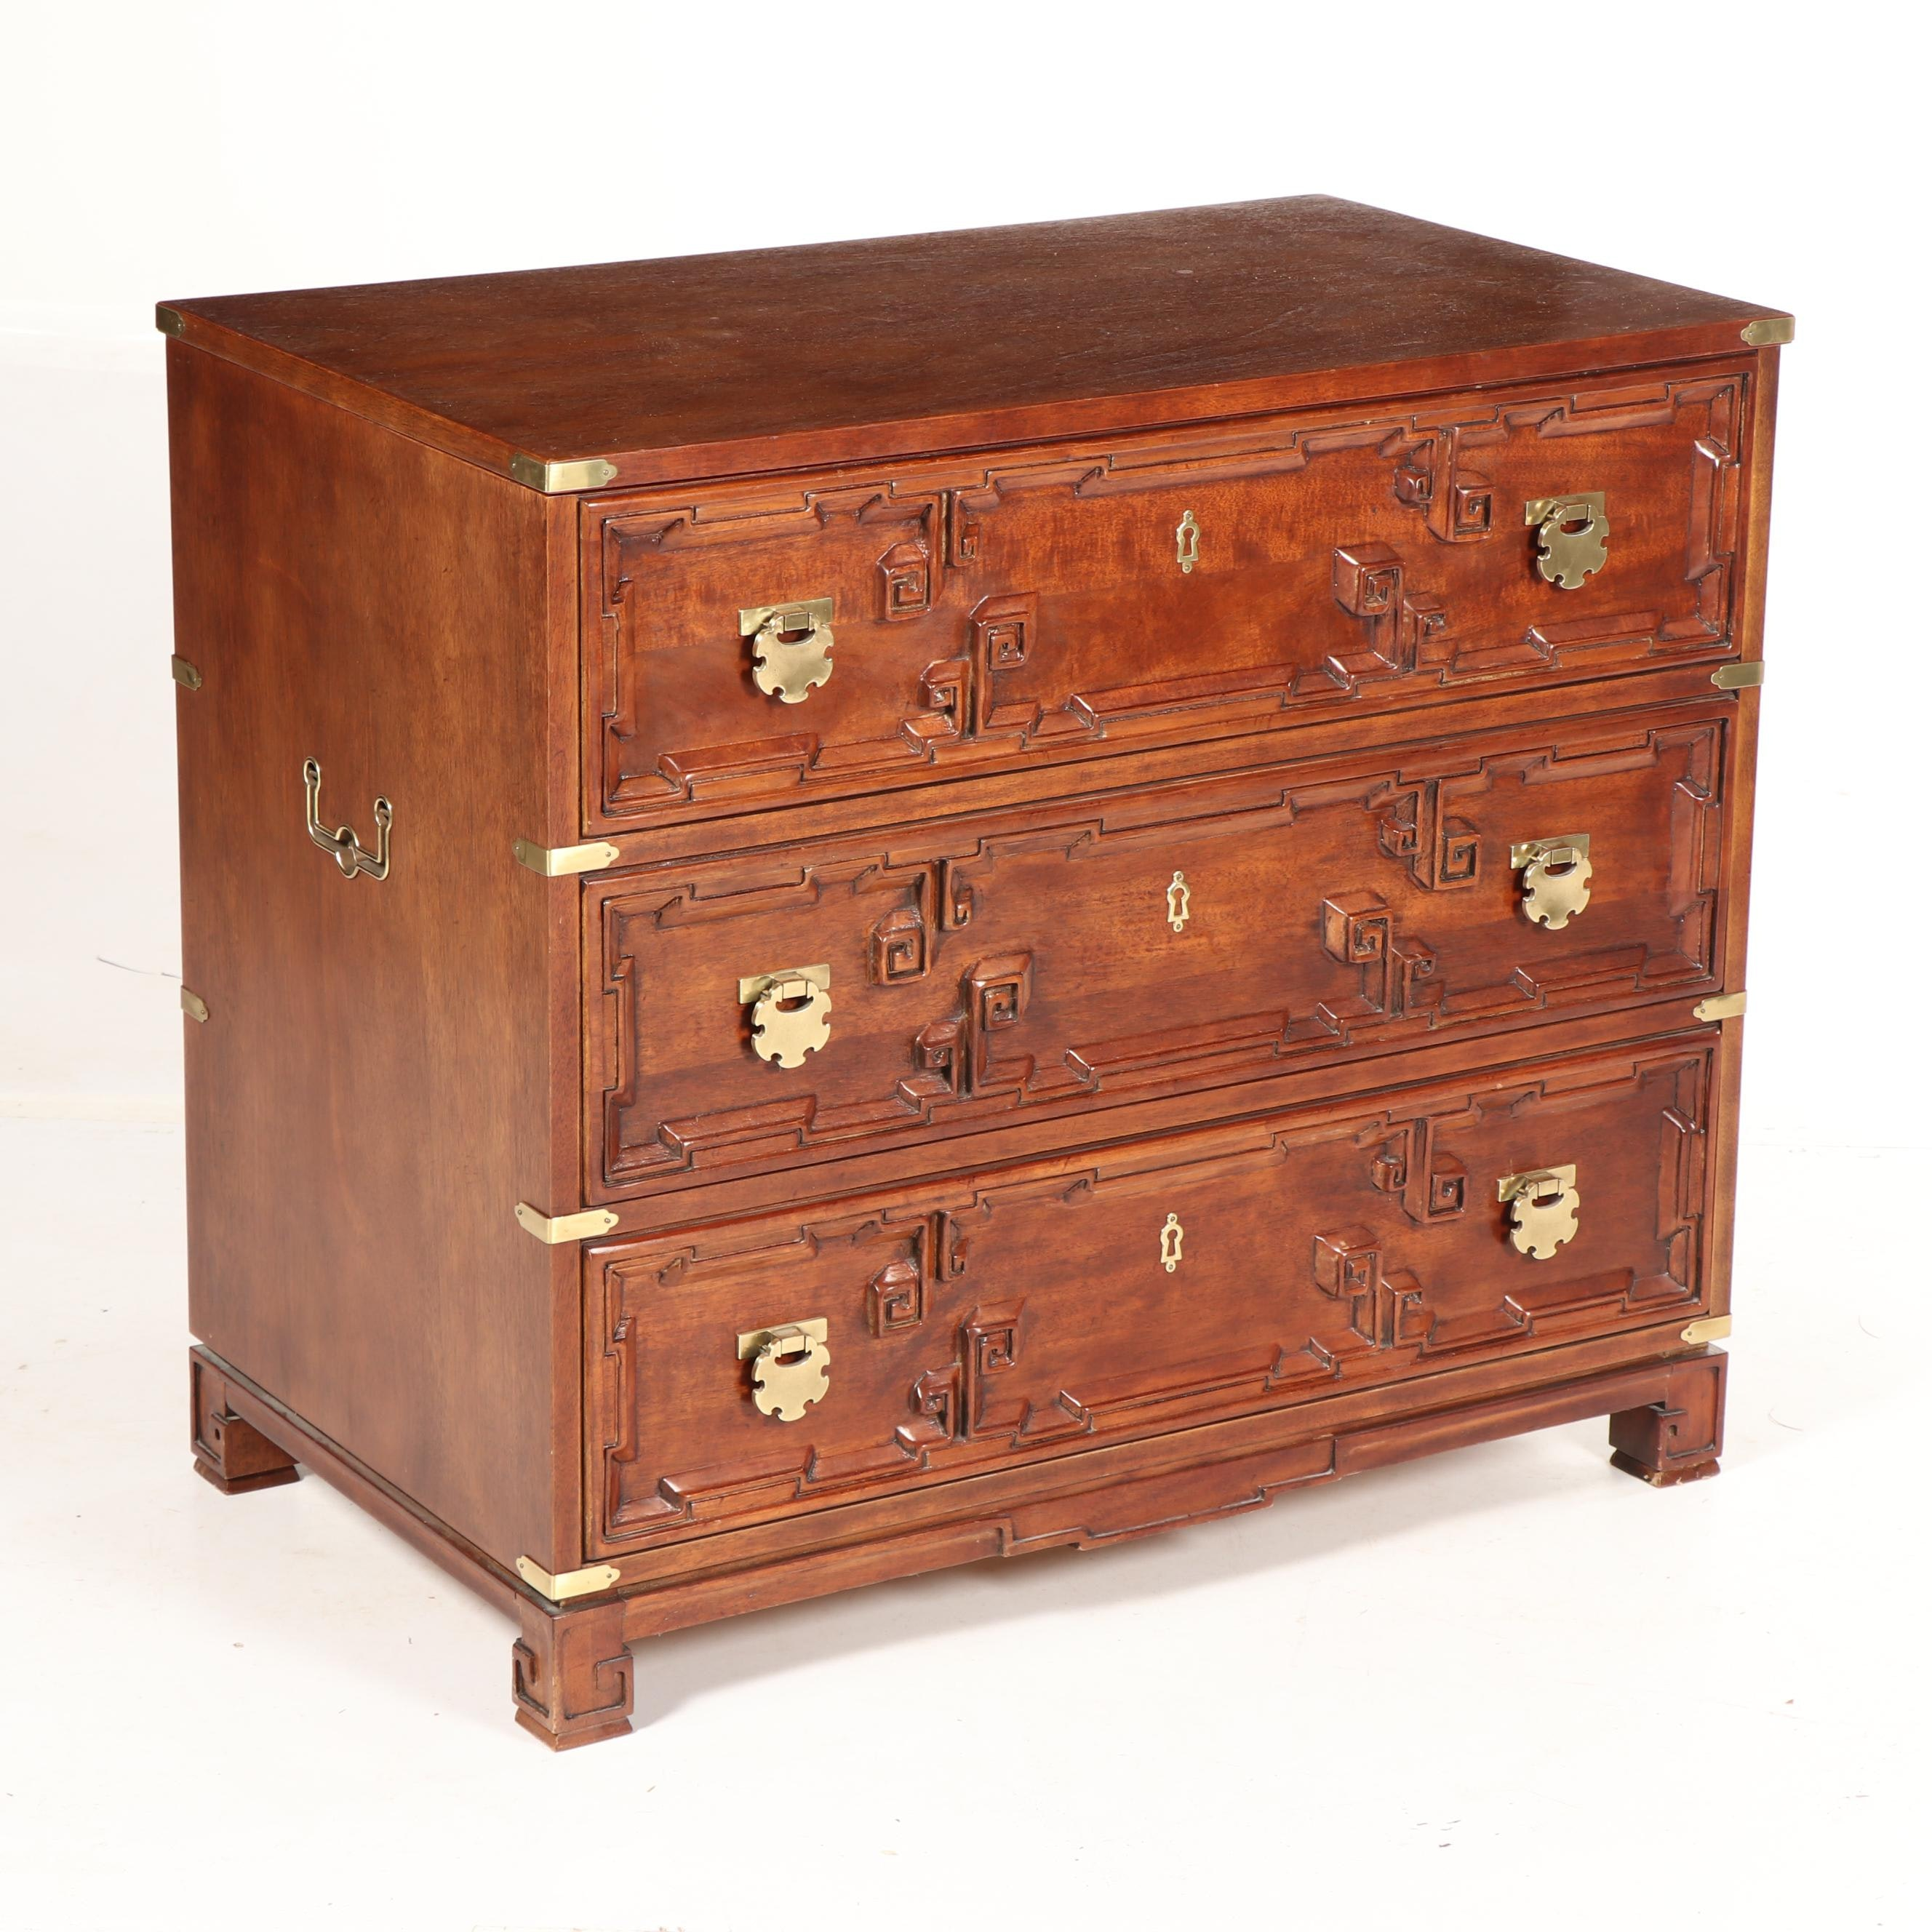 Chinese Wooden Faux Chest of Drawers Pop Up Cabinet, 20th/21st Century